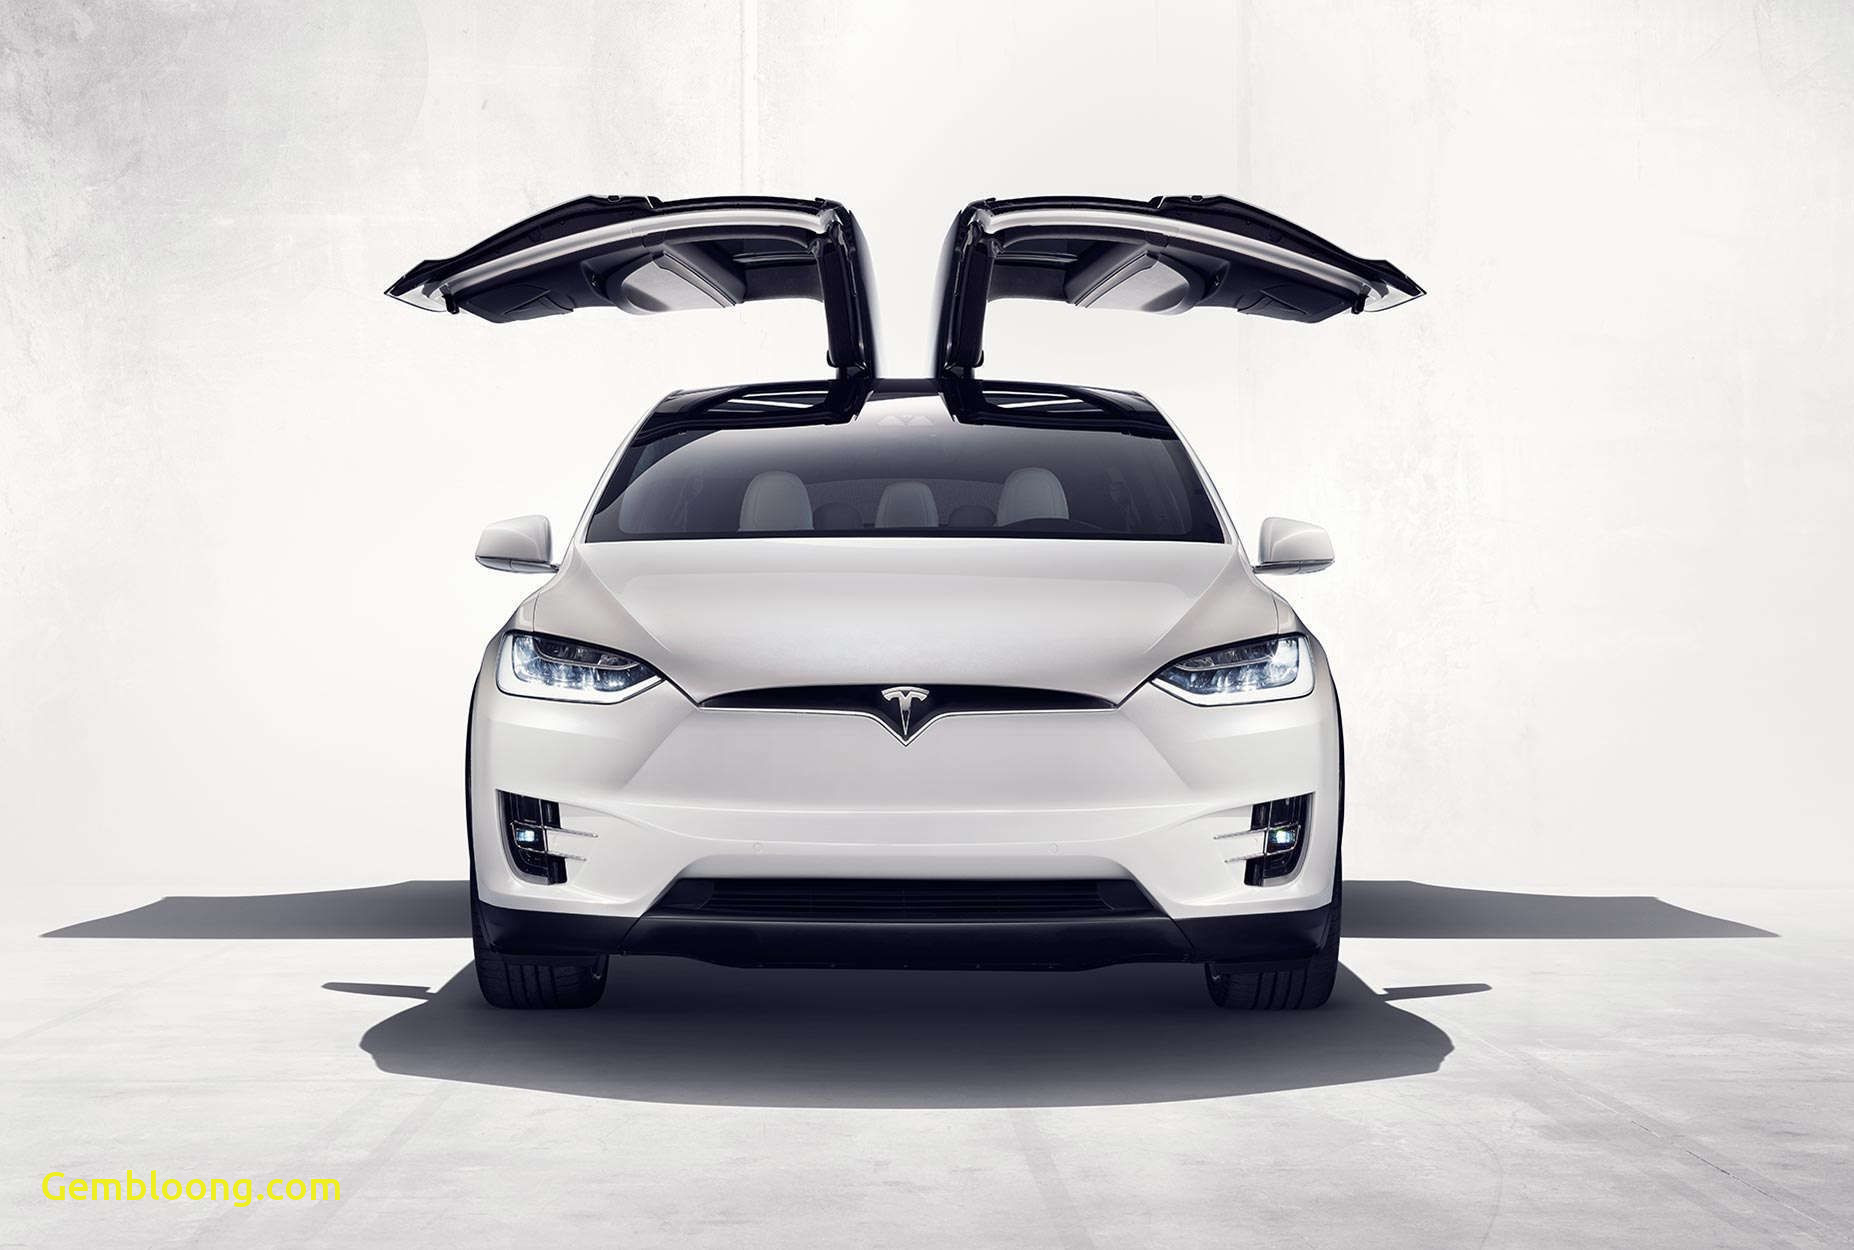 Awesome Tesla with Wings